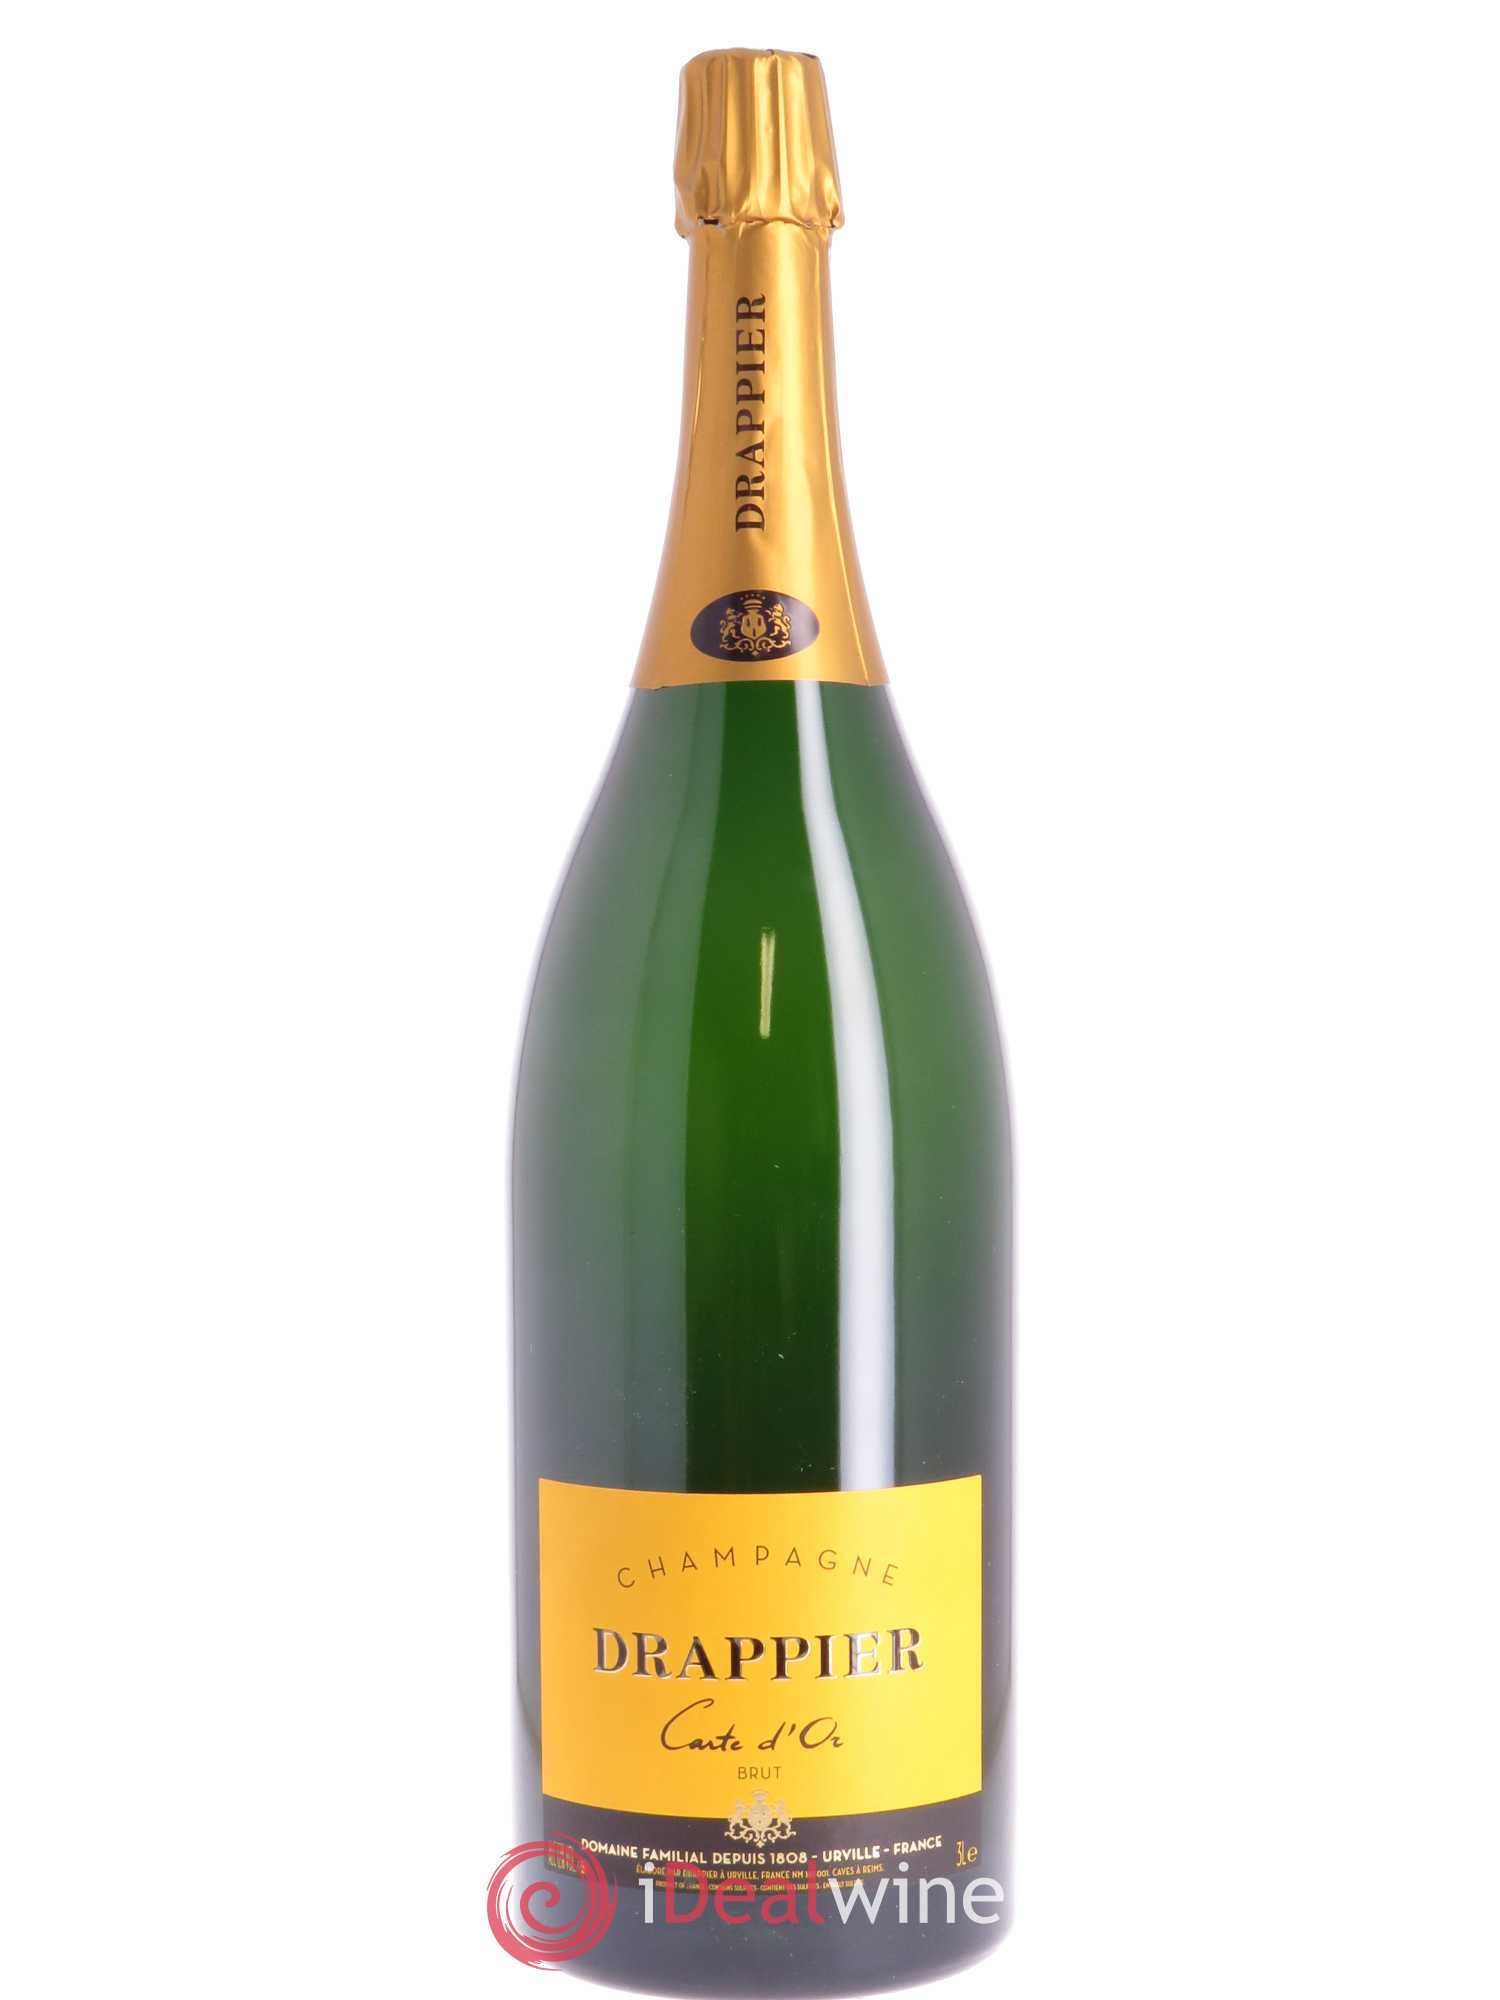 Carte d'Or Brut Drappier   - Lot de 1 Double-magnum